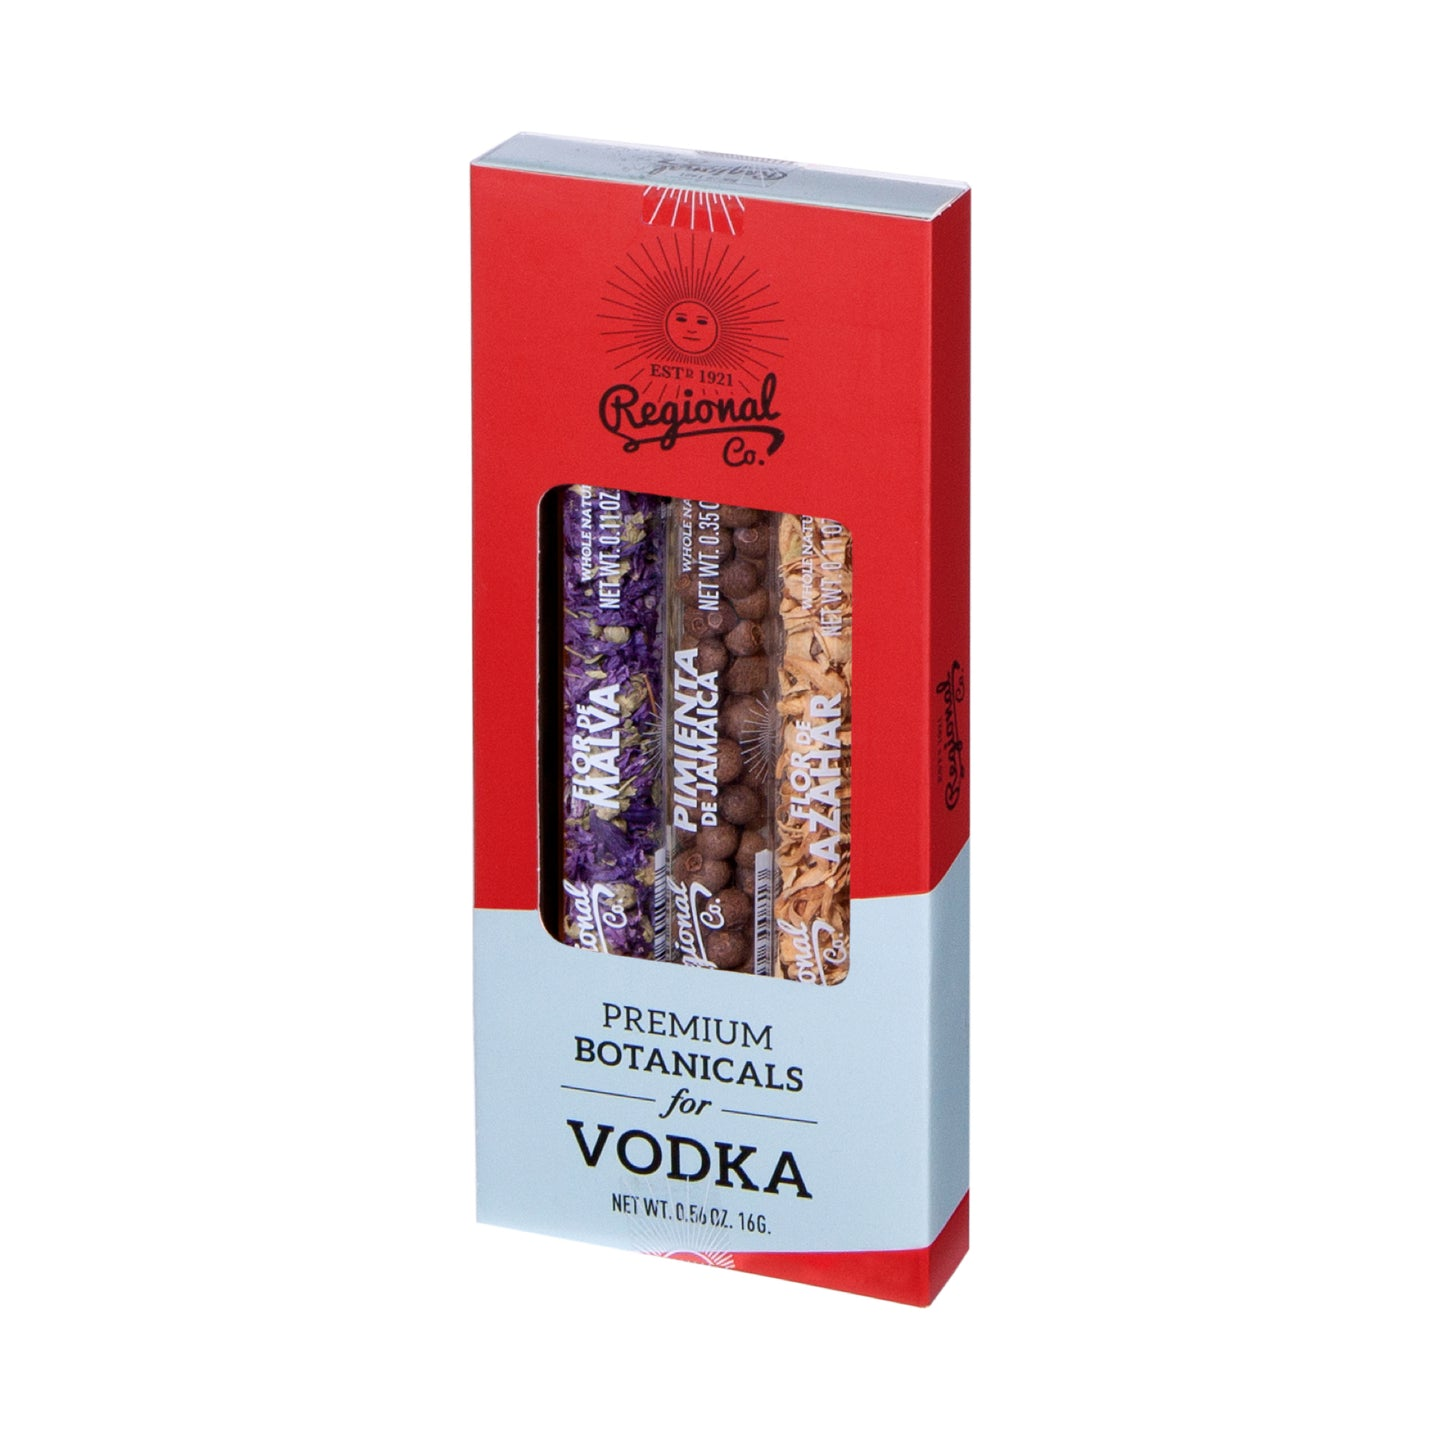 Regional Co.: 3-Pack Botanicals Vodka